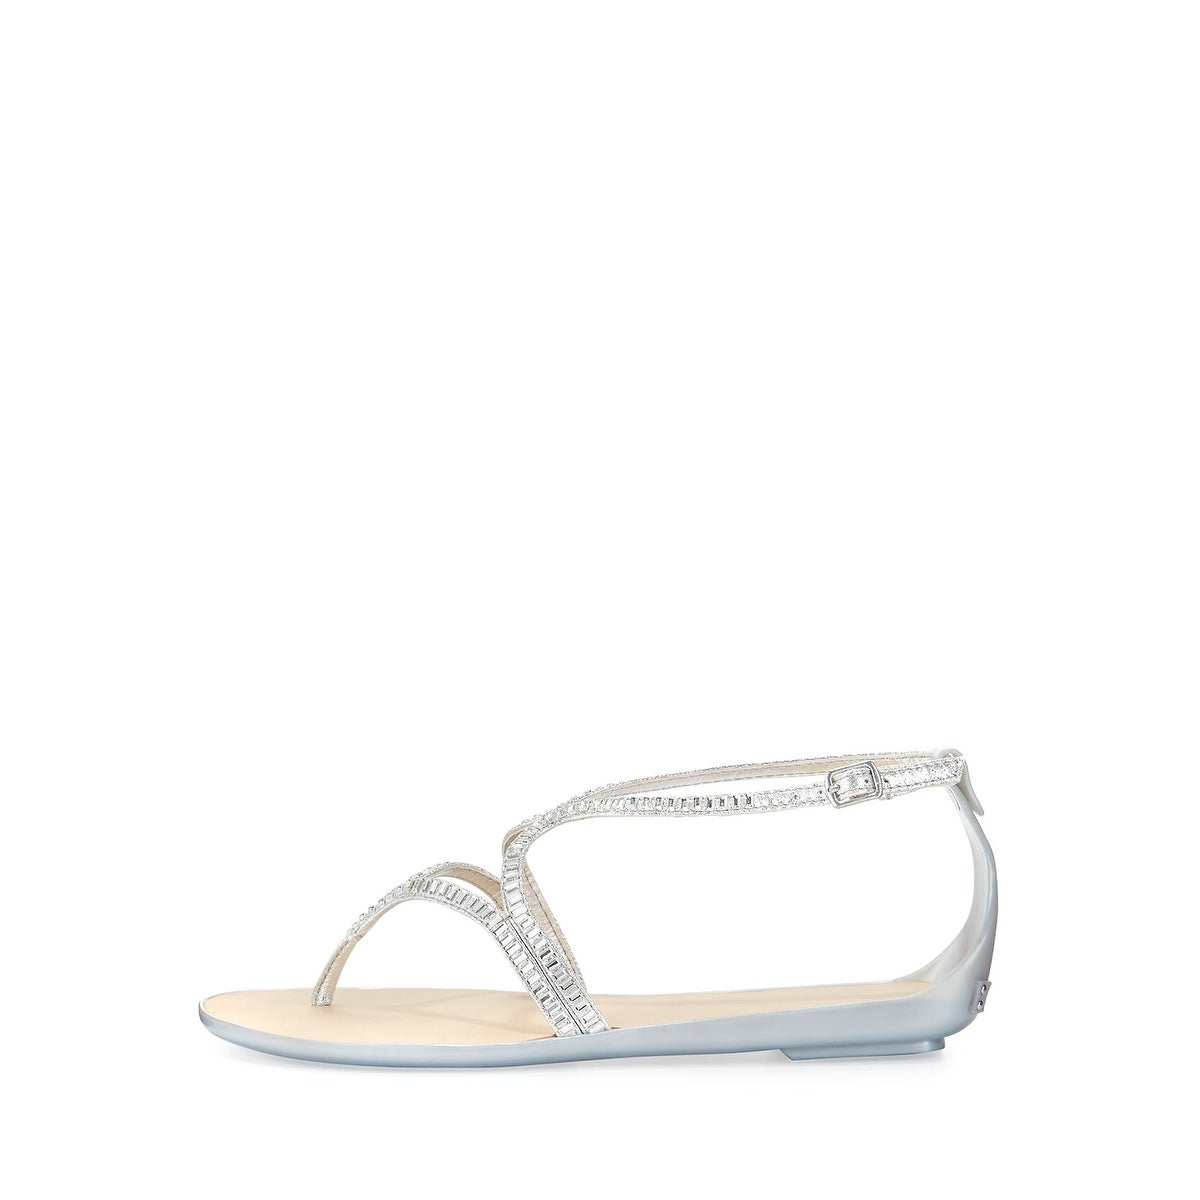 6670a57446f3 Buy BCBGeneration Women s Sandals Online at Overstock